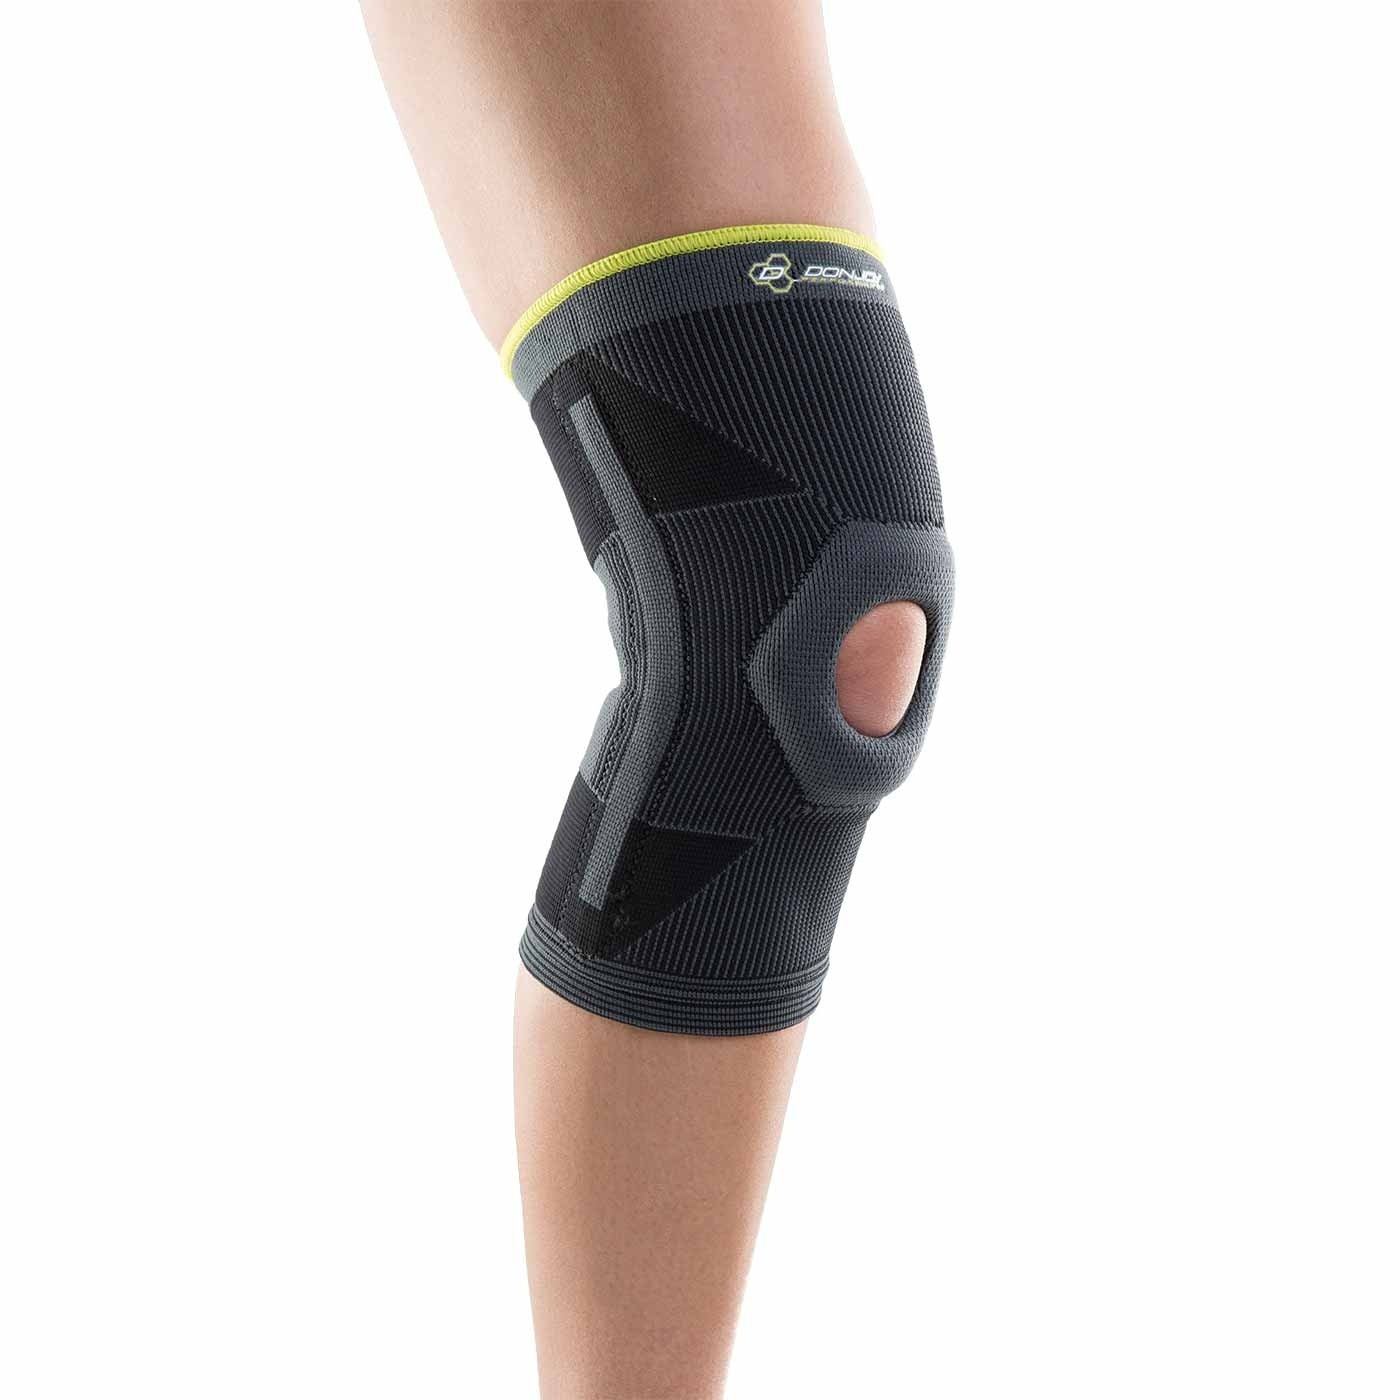 0a68c50b64 DonJoy Performance Deluxe Knit Knee Sleeve Brace with Stays